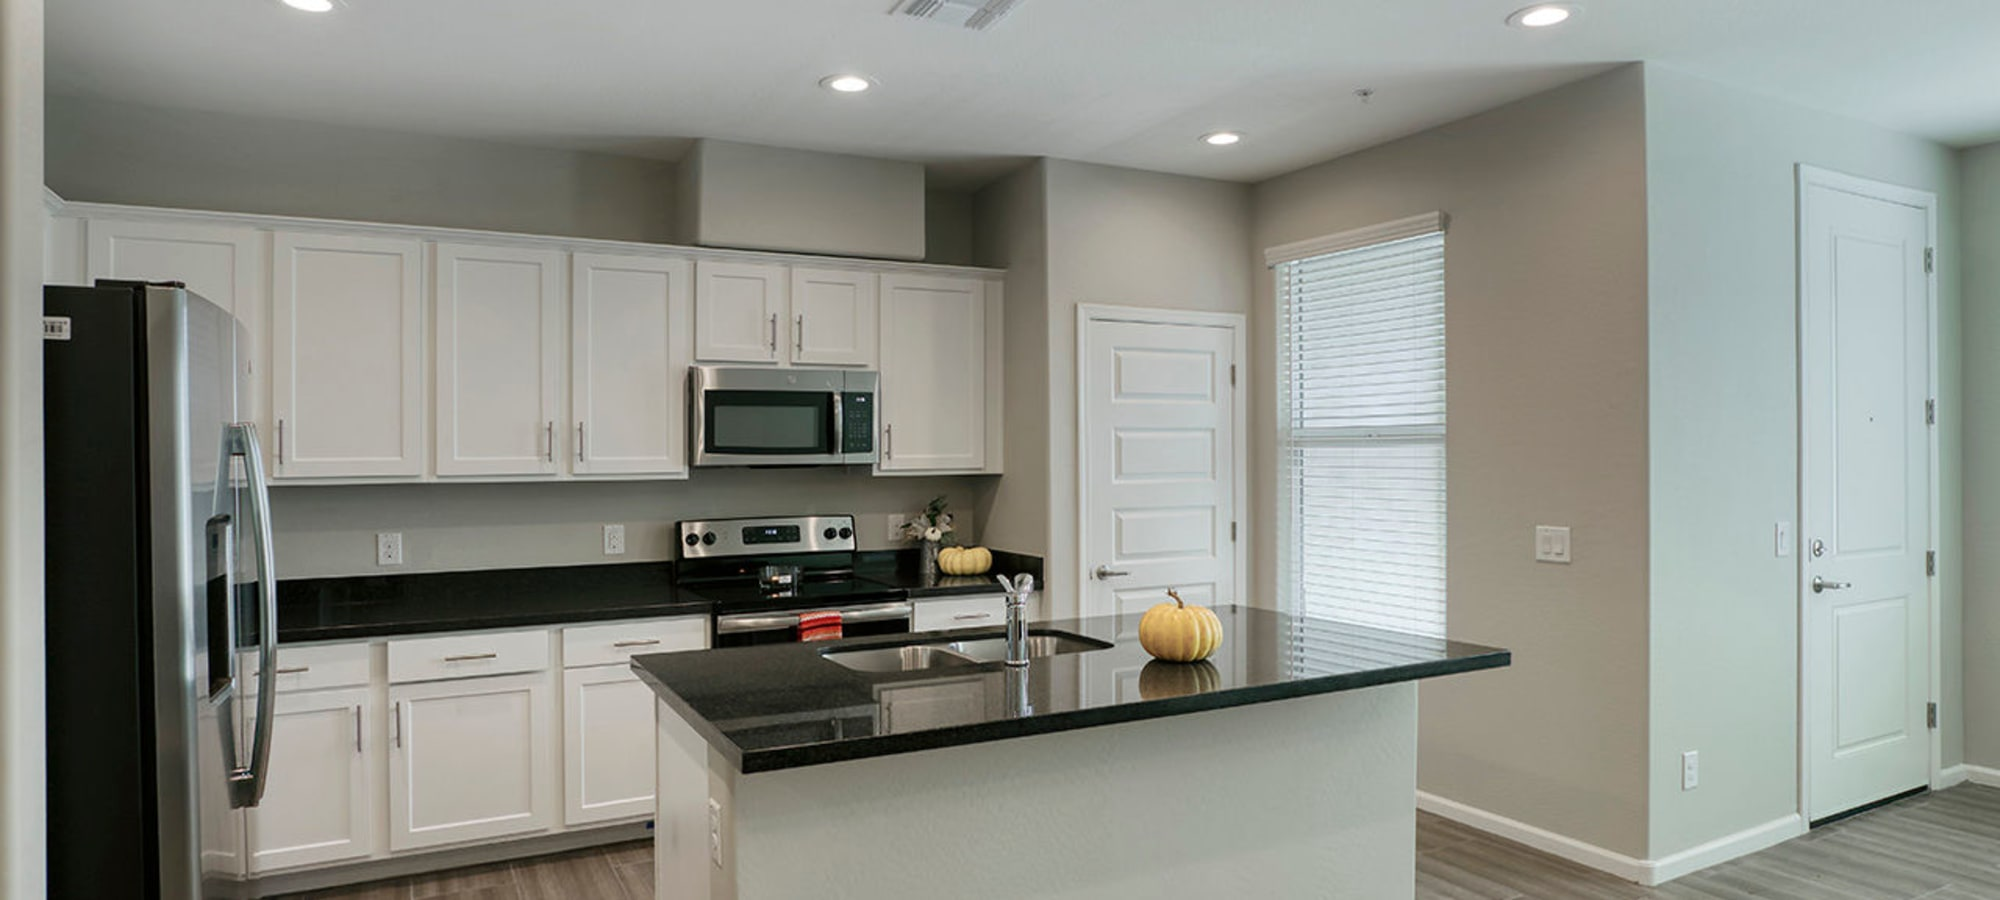 Luxury kitchen at BB Living at Val Vista in Gilbert, Arizona